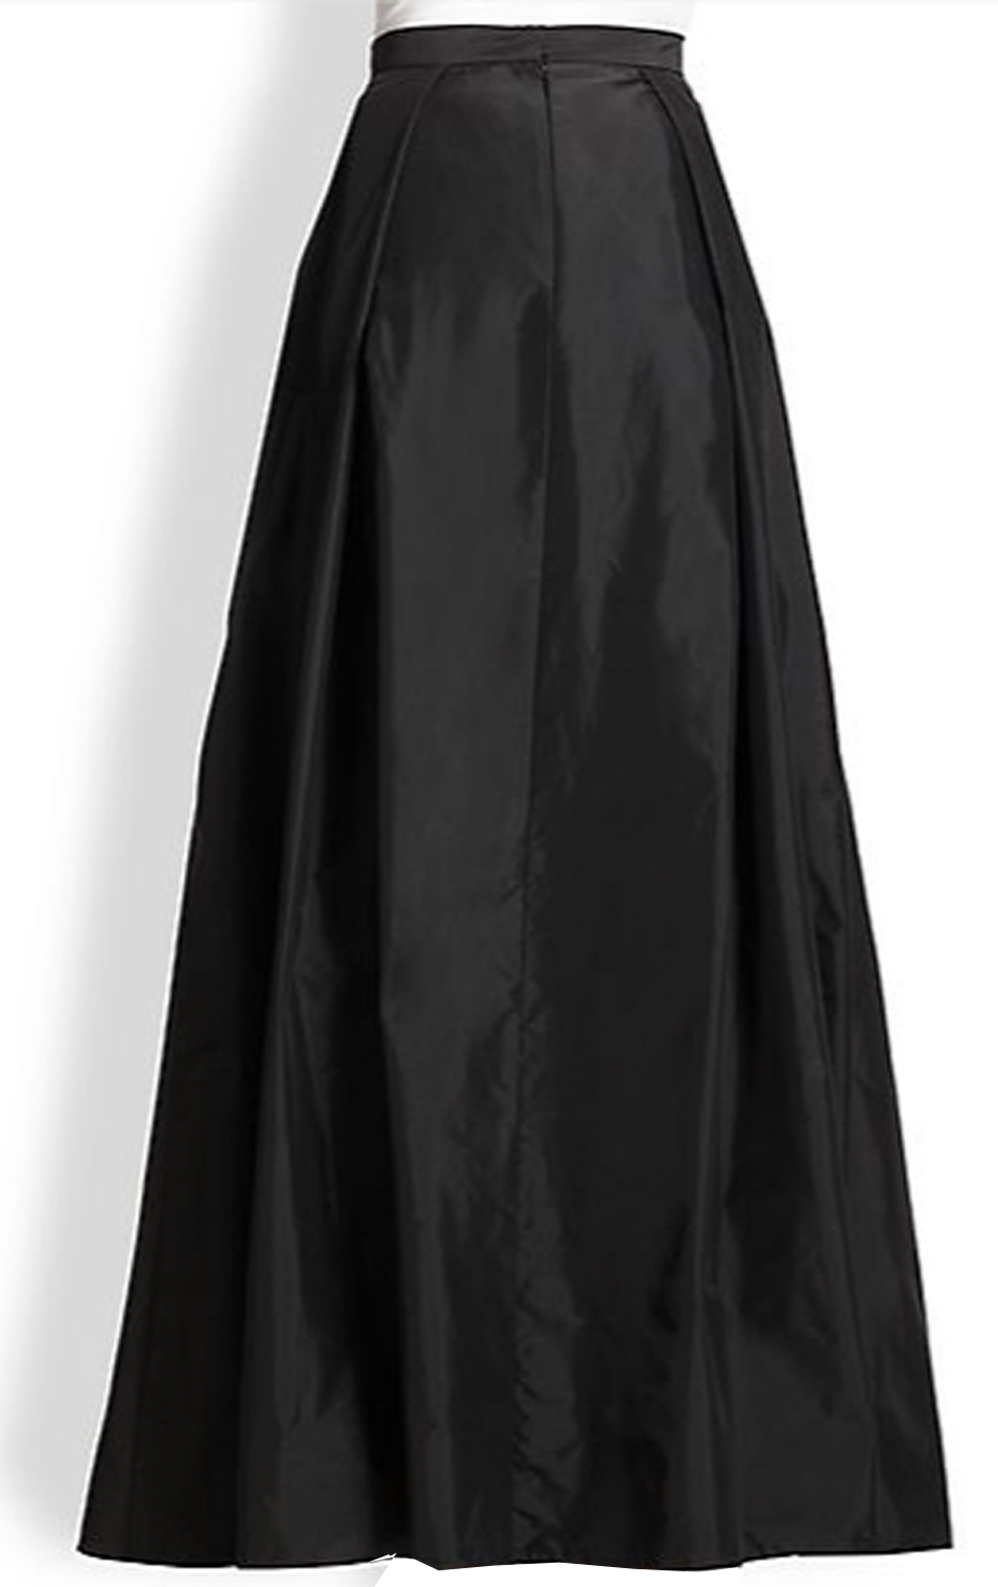 Black Taffeta Maxi Skirt With Inverted Pleats Elizabeth